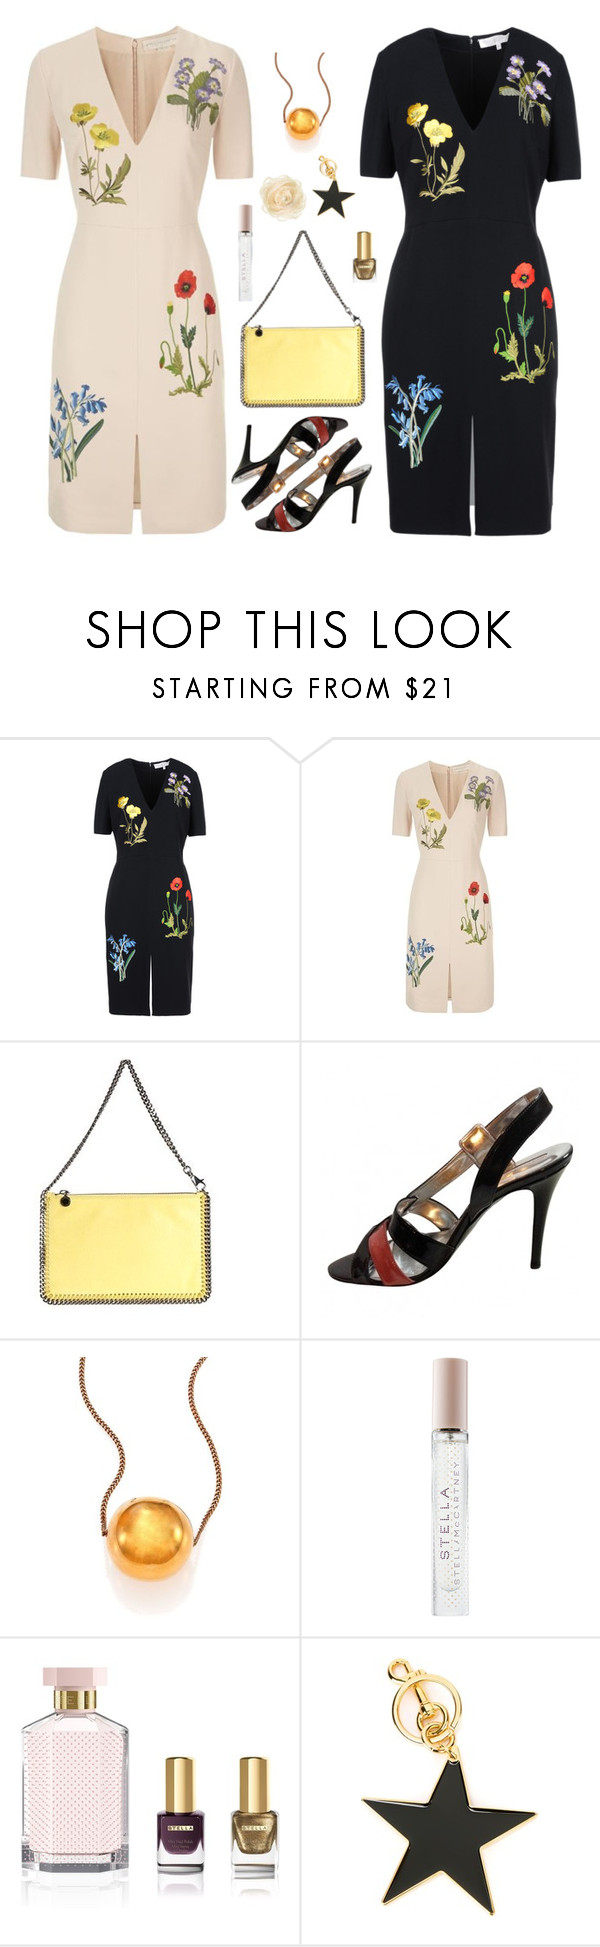 """""""Stella Day & Night"""" by molly2222 ❤ liked on Polyvore featuring STELLA McCARTNEY, women's clothing, women, female, woman, misses, juniors and StellaMcCartney"""